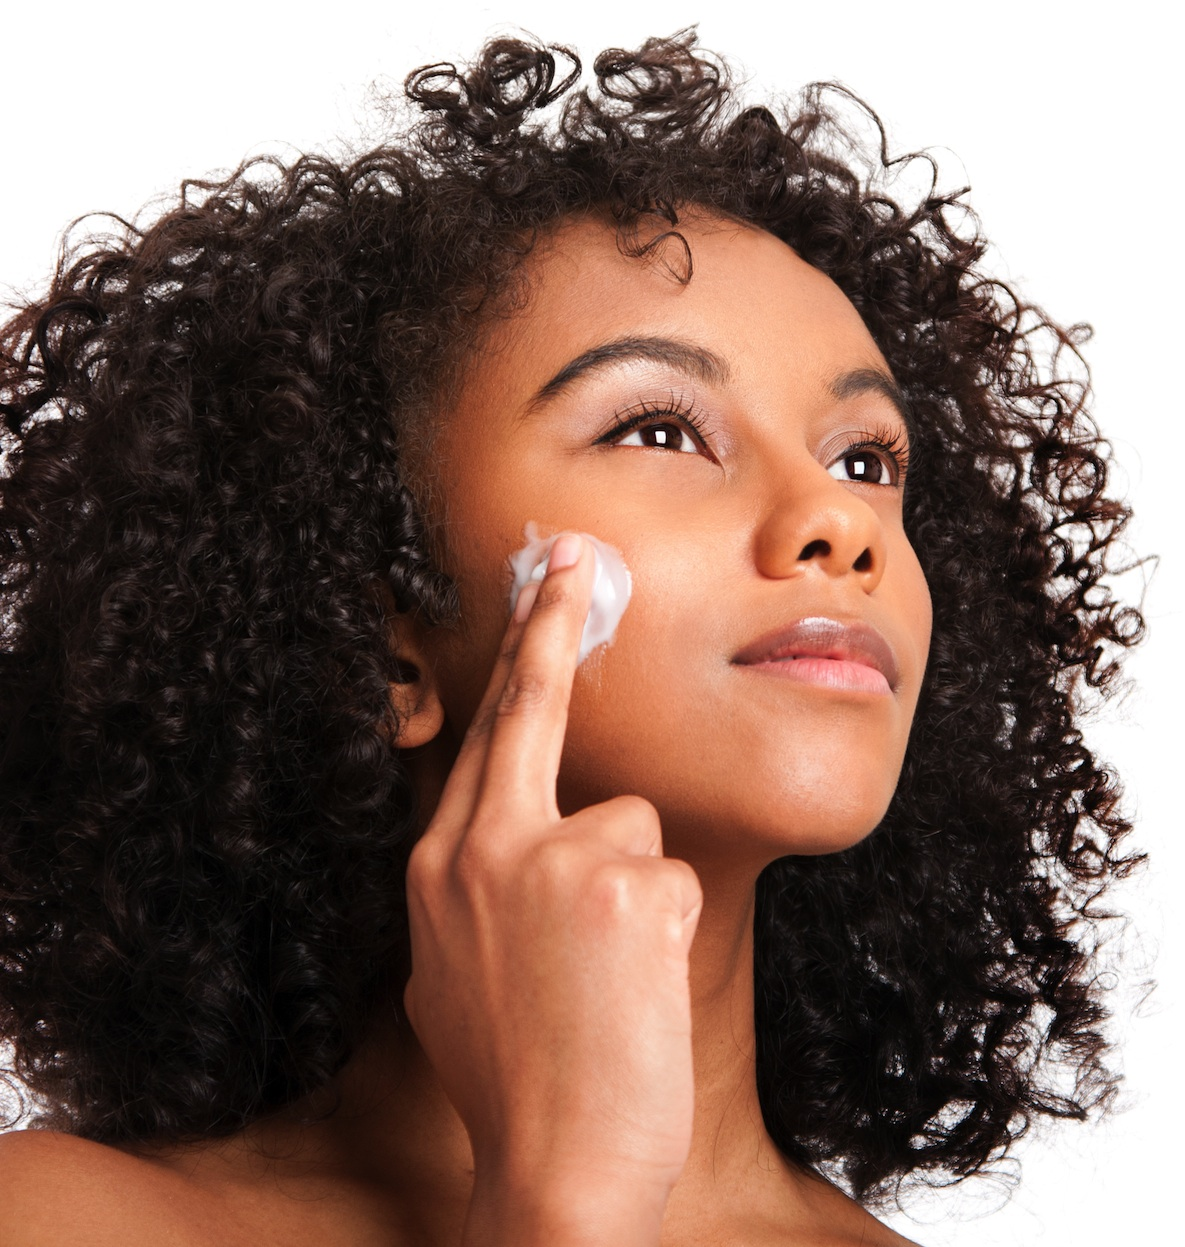 5 Must-Knows About Ethnic Skin